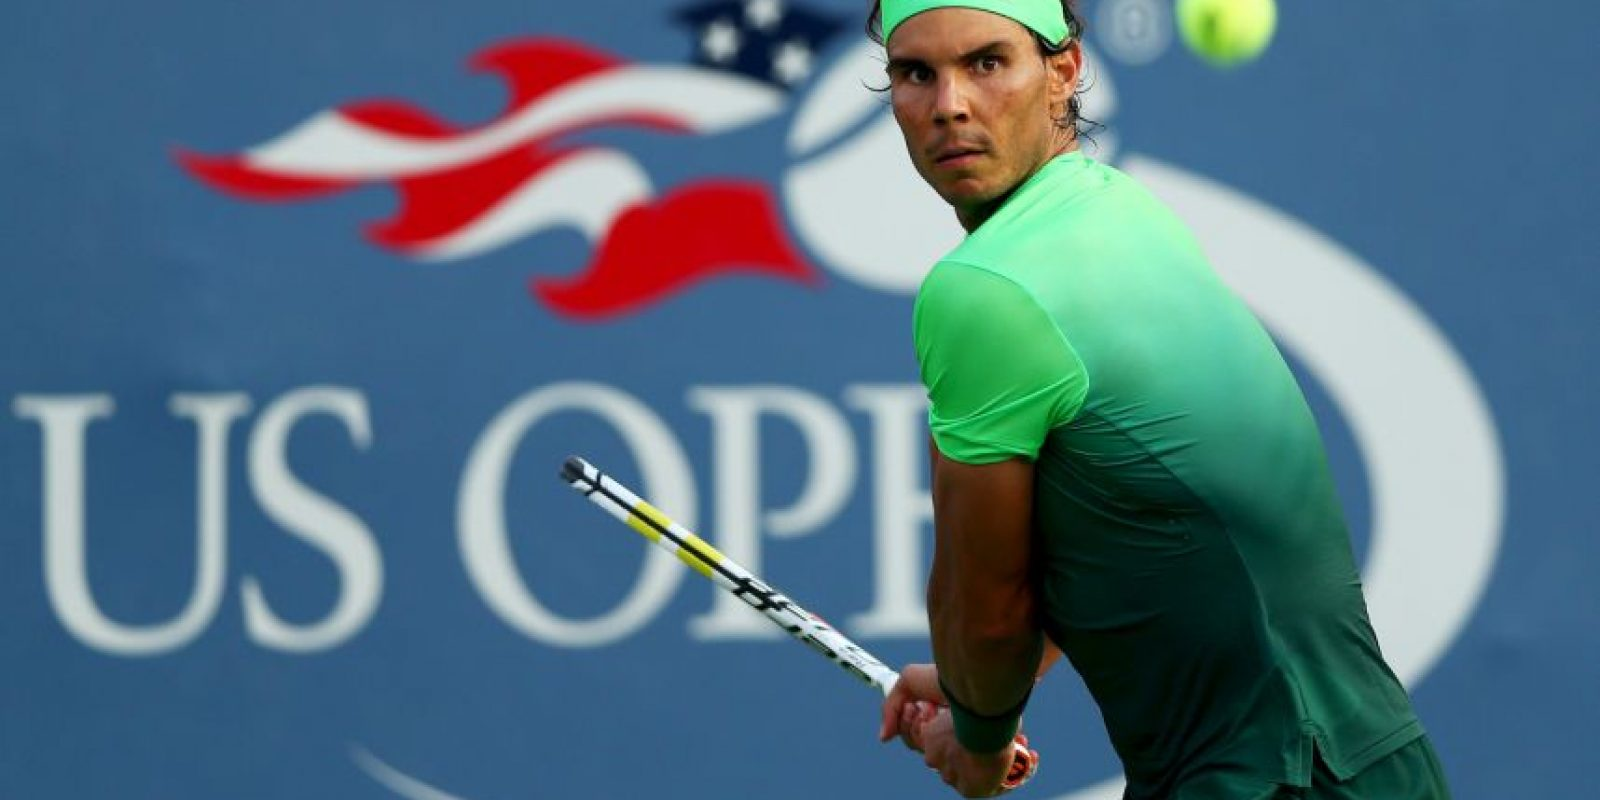 2. Rafael Nadal (8 en el ranking ATP) Foto: Getty Images